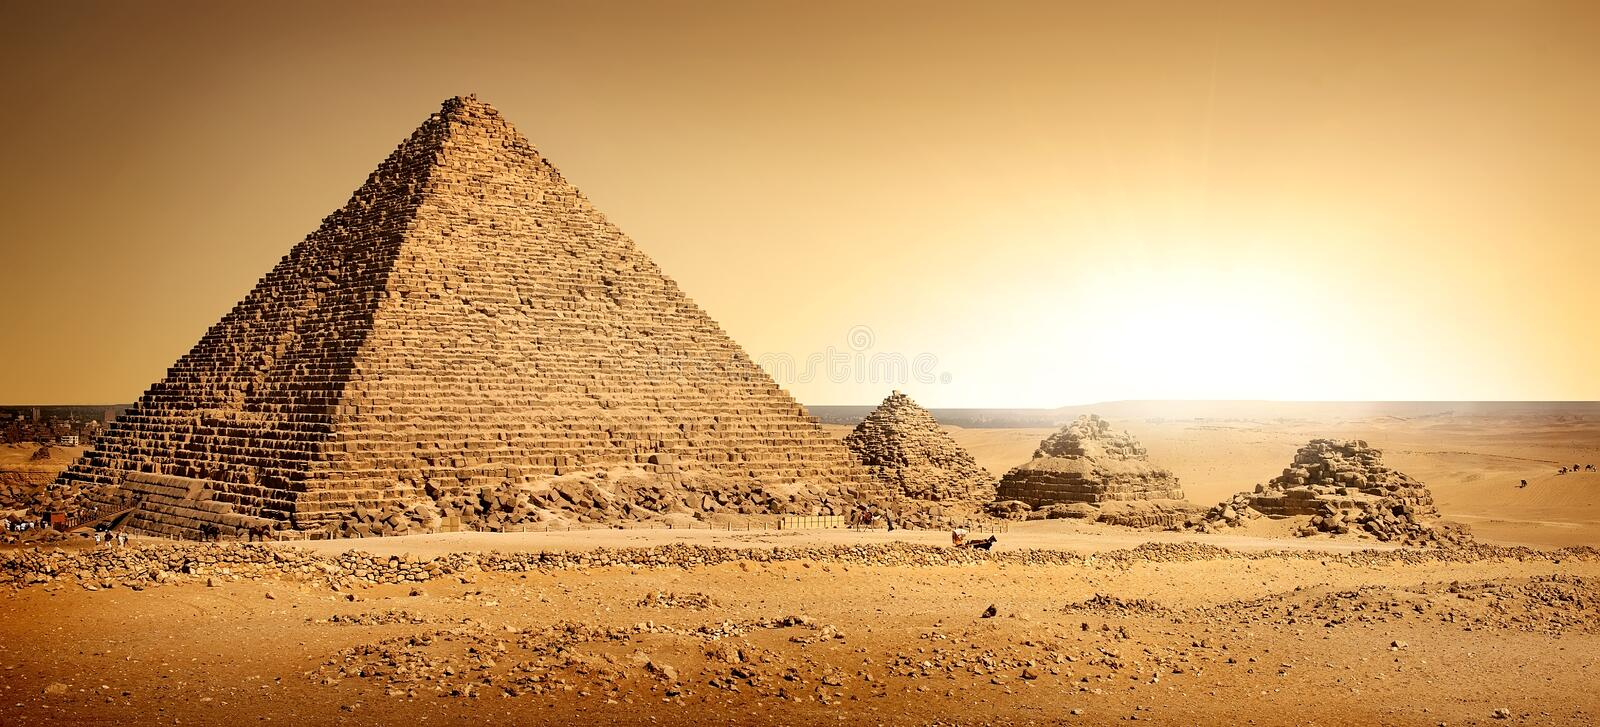 Egyptian pyramids in sand stock images